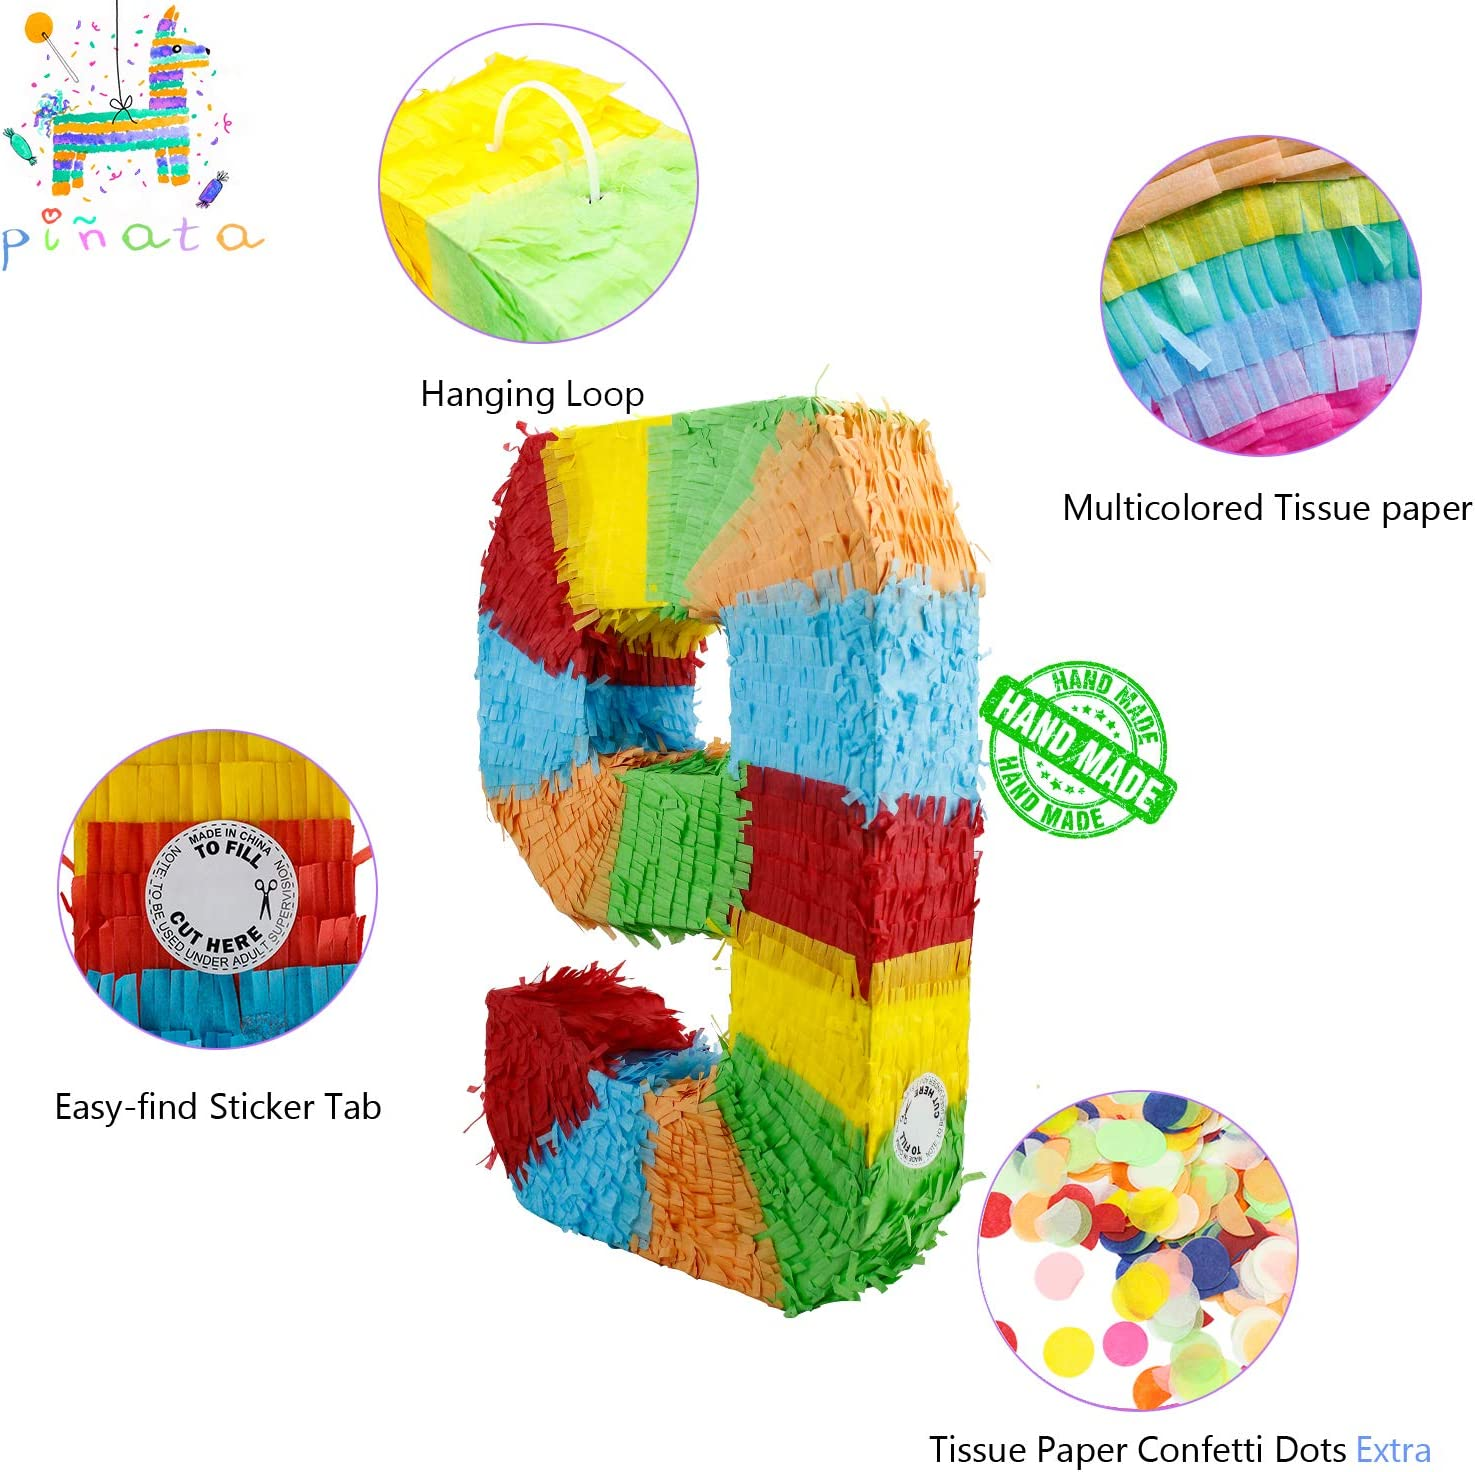 kaimei Pinata Colorful Numbers for Kids Birthday Anniversary Celebration Decorations Gaming Theme Pet Party Fiesta Supplies with Multicolored Confetti Colorful Numbers Pinatas 0 1 2 3 4 5 6 7 8 9